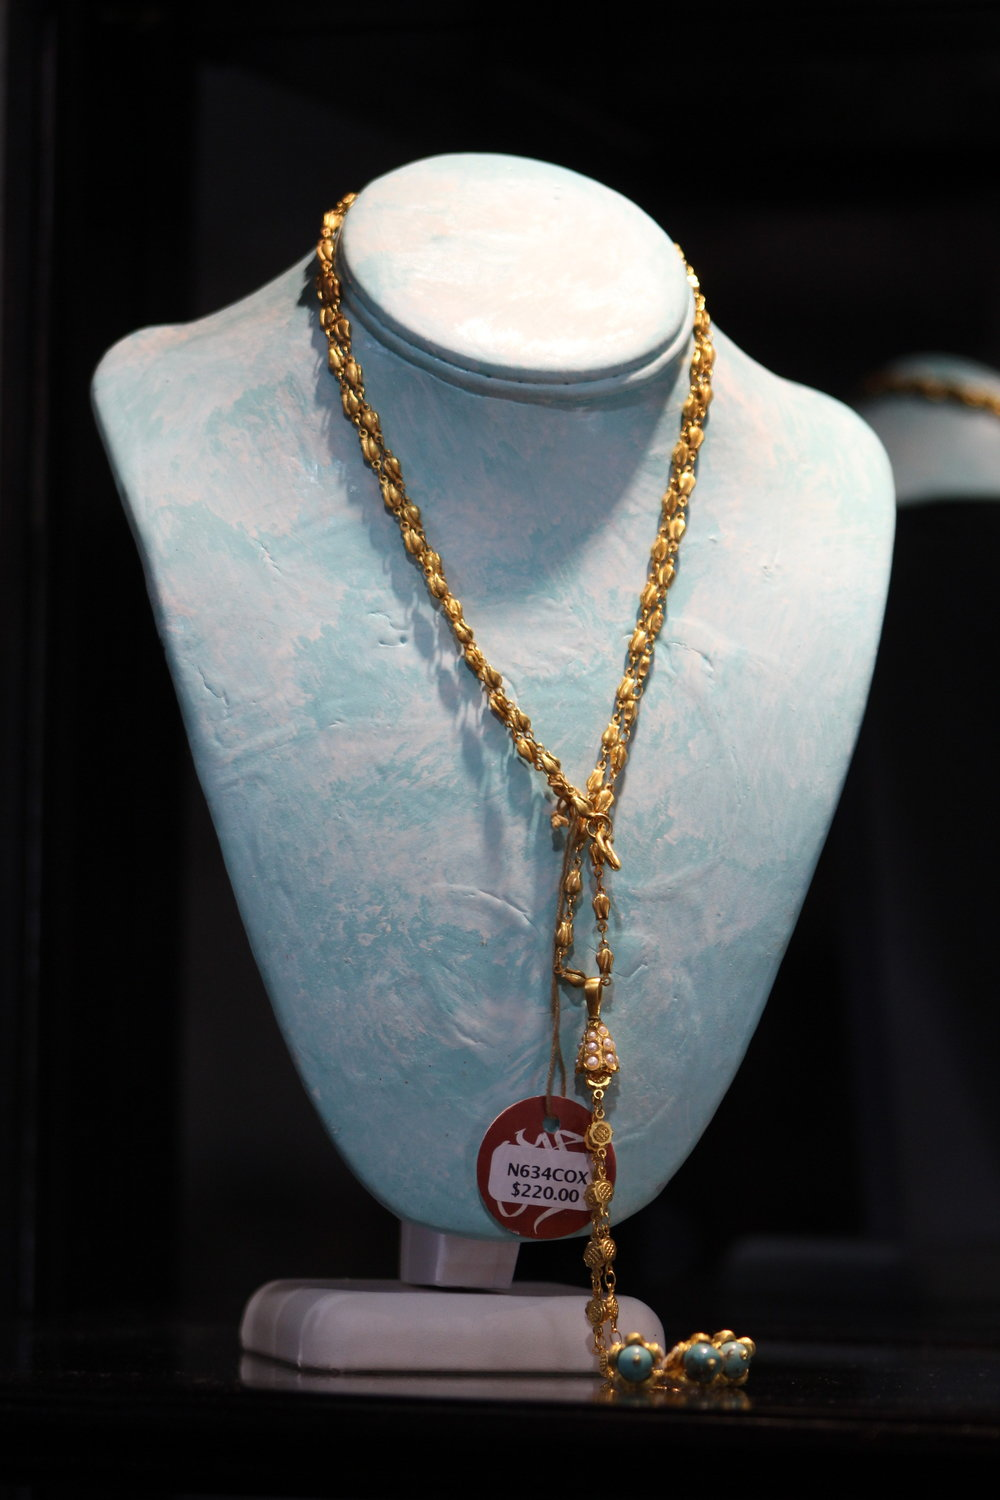 Gold Necklace with Turquoise & Pearls